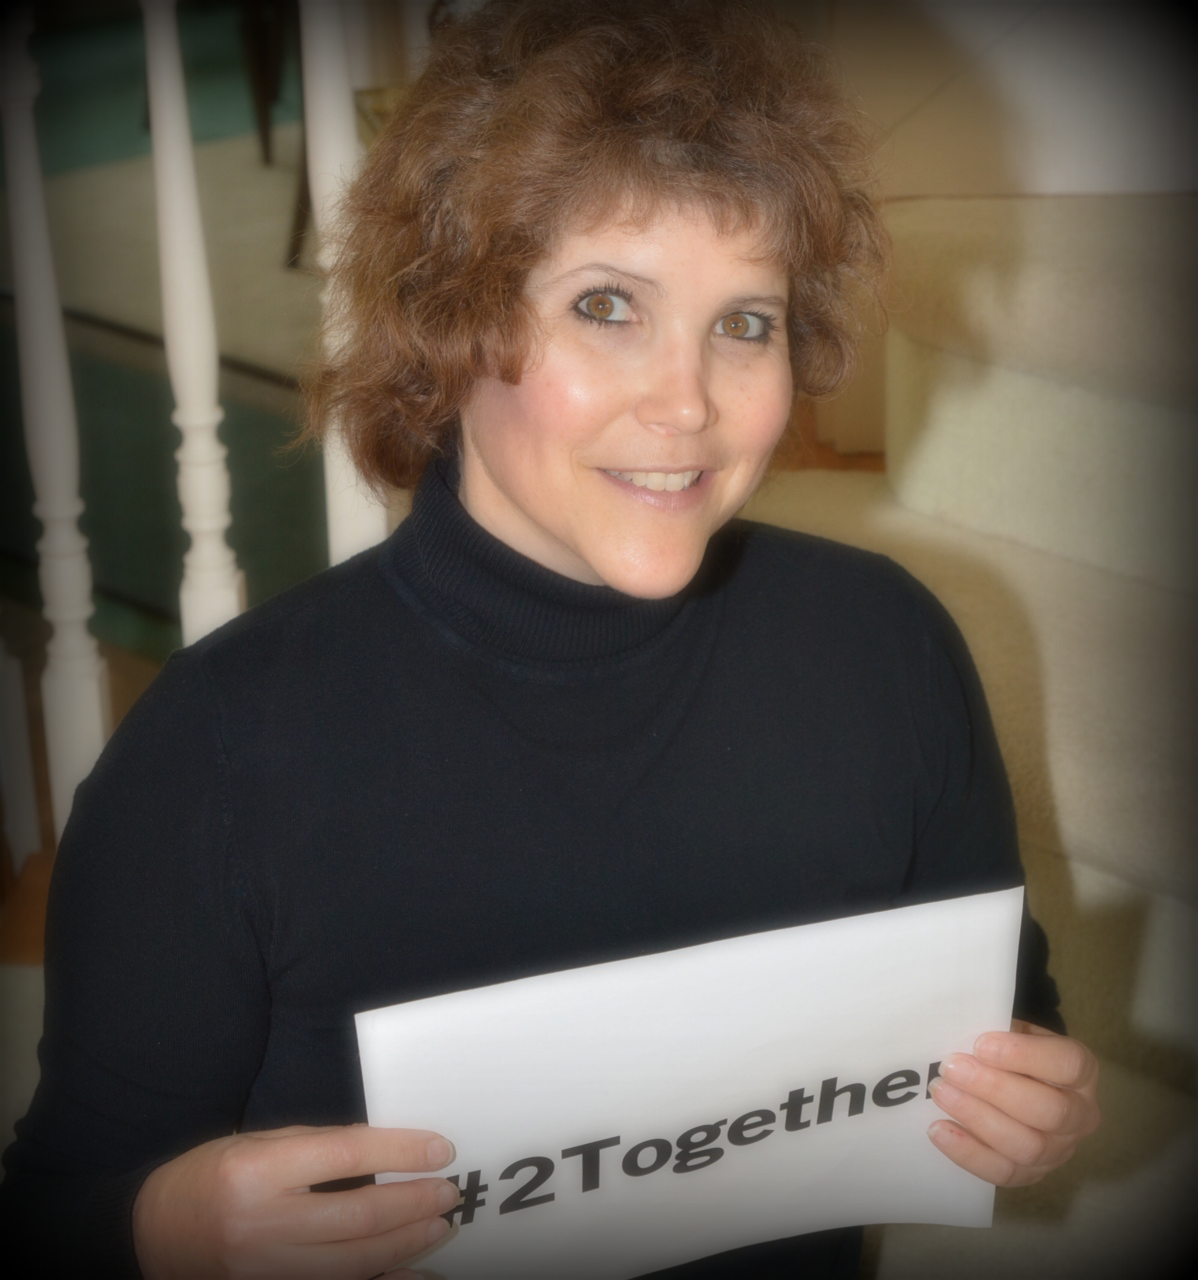 Join Lisa Desatnik in supporting the #2TogetherProject